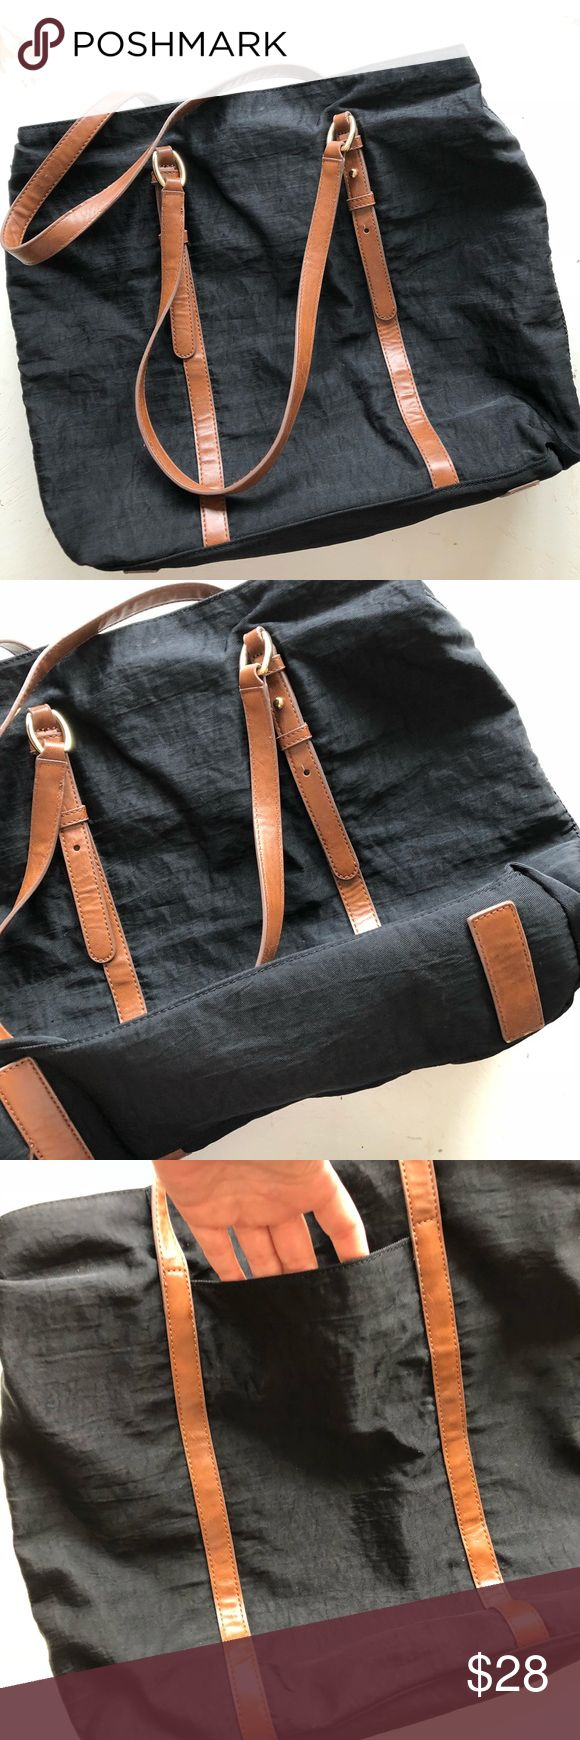 "Banana Republic black nylon tote bag Banana republic carry-to-work tote. Perfect for days at the office. Waterproof spot-cleanable nylon fabric, faux leather brown trim. Multiple compartments for all your essentials. Exterior is in great shape, some ink stains on bottom of lining. Tote is 16"" by 18"" Banana Republic Bags Totes"